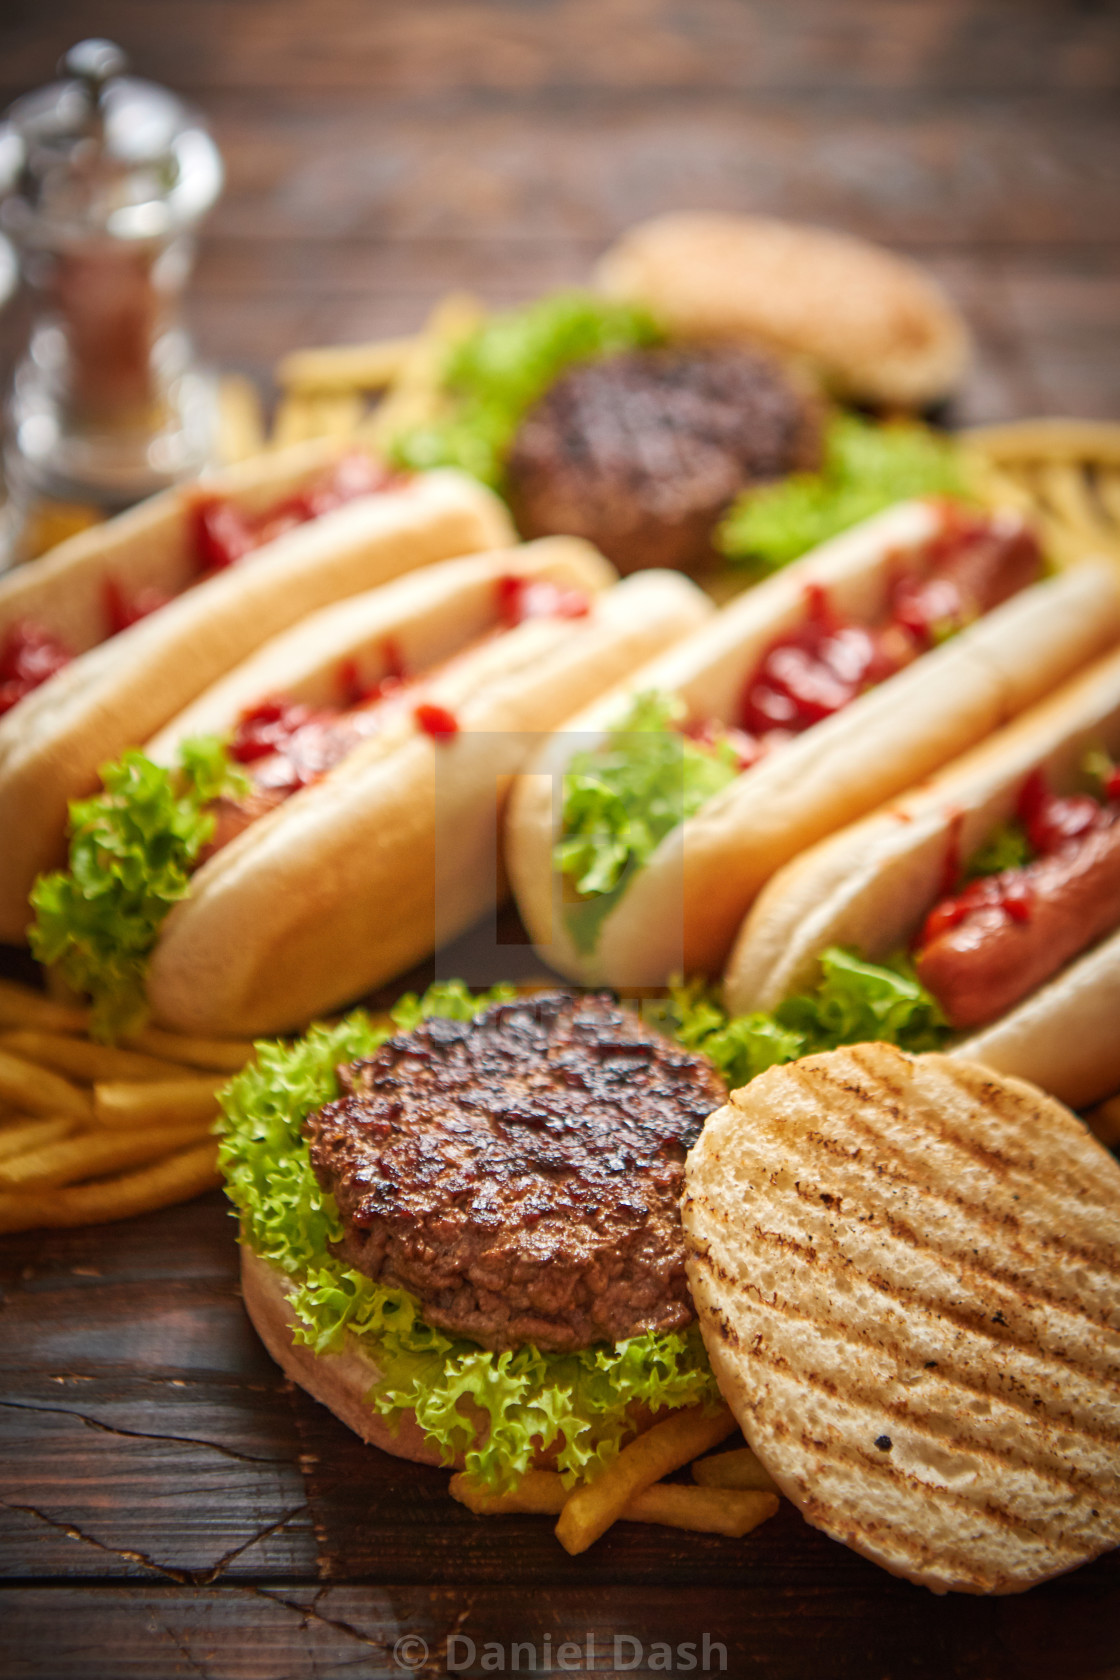 Fastfood Assortment Hamburgers And Hot Dogs Placed On Rusty Wood Table License Download Or Print For 5 00 Photos Picfair